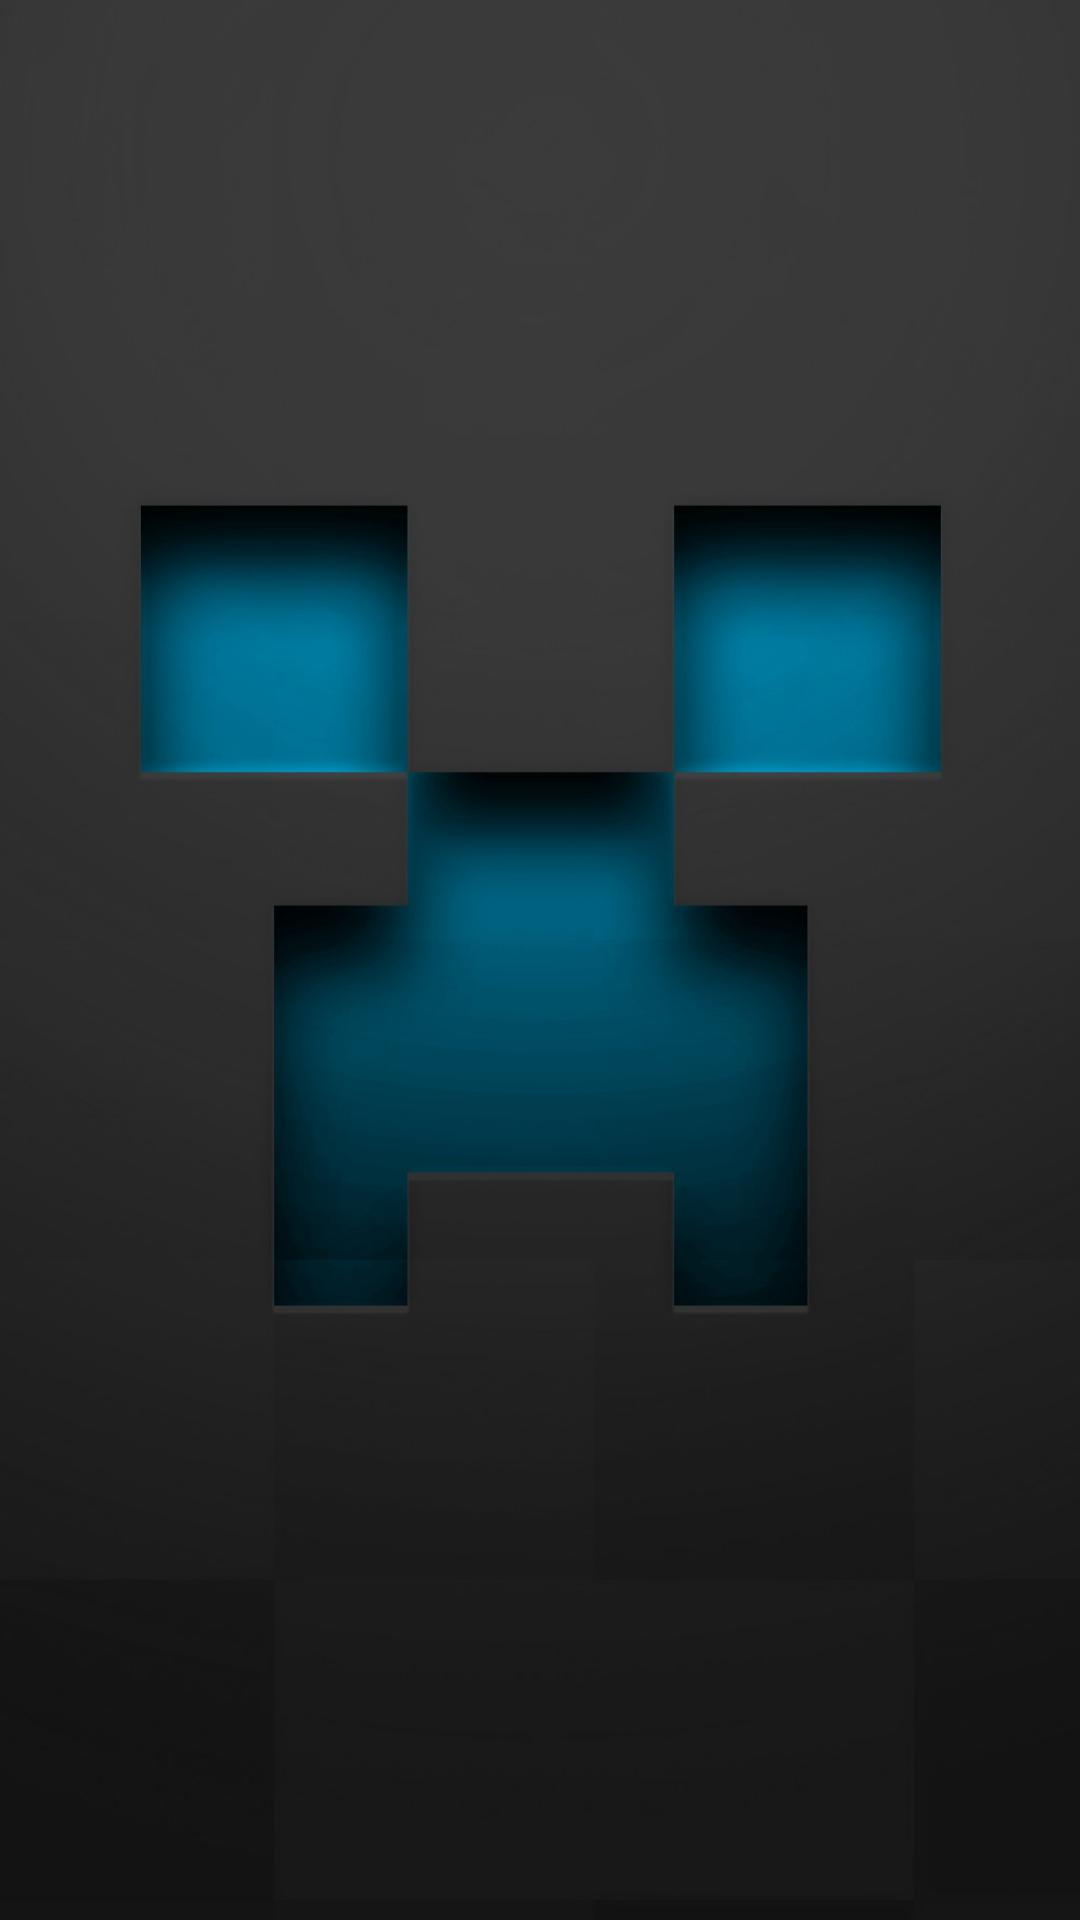 http www wallpapers com minecraft - photo #45